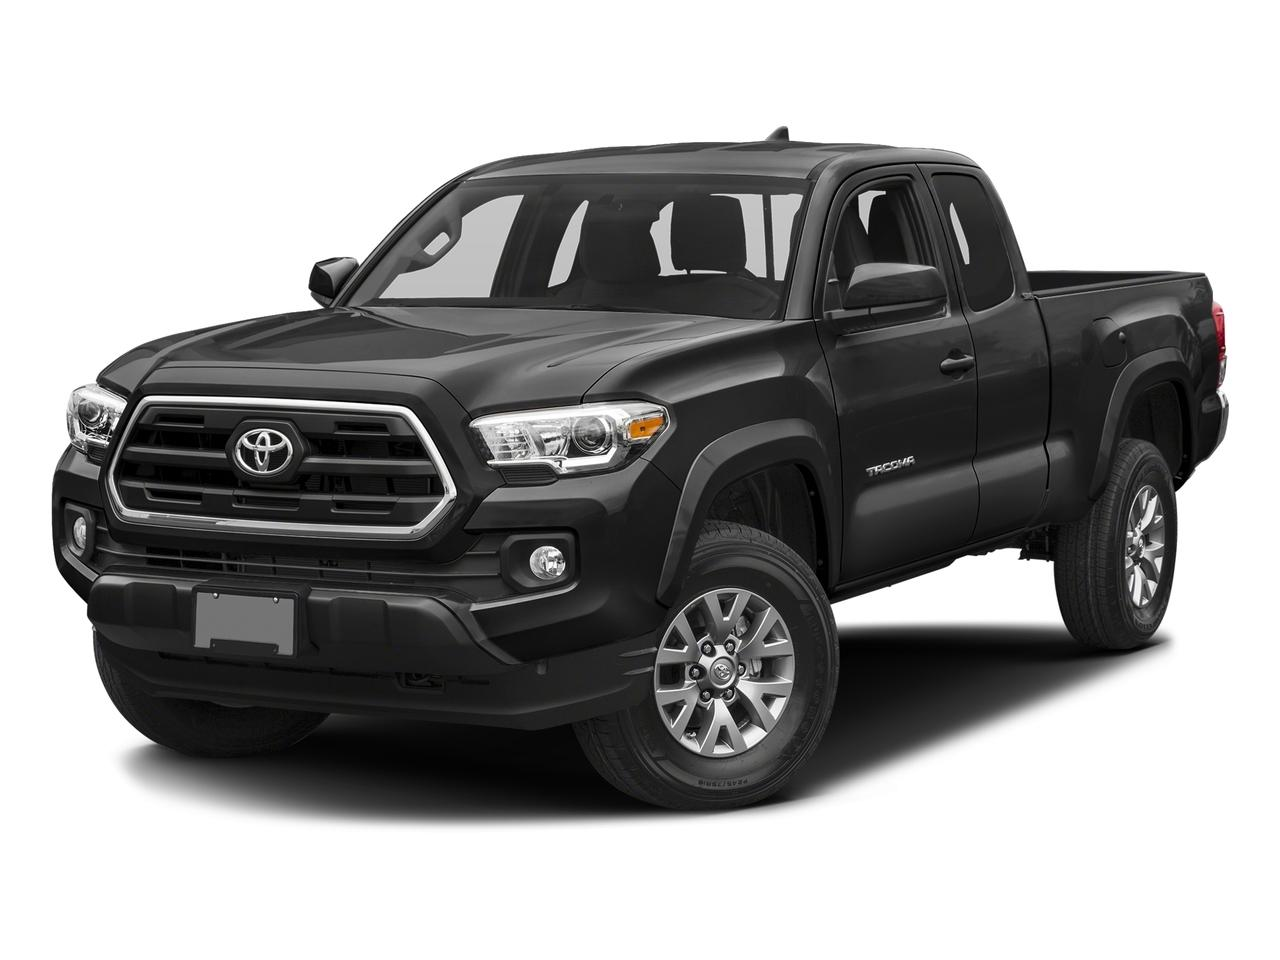 2017 Toyota Tacoma Vehicle Photo in Quakertown, PA 18951-1403